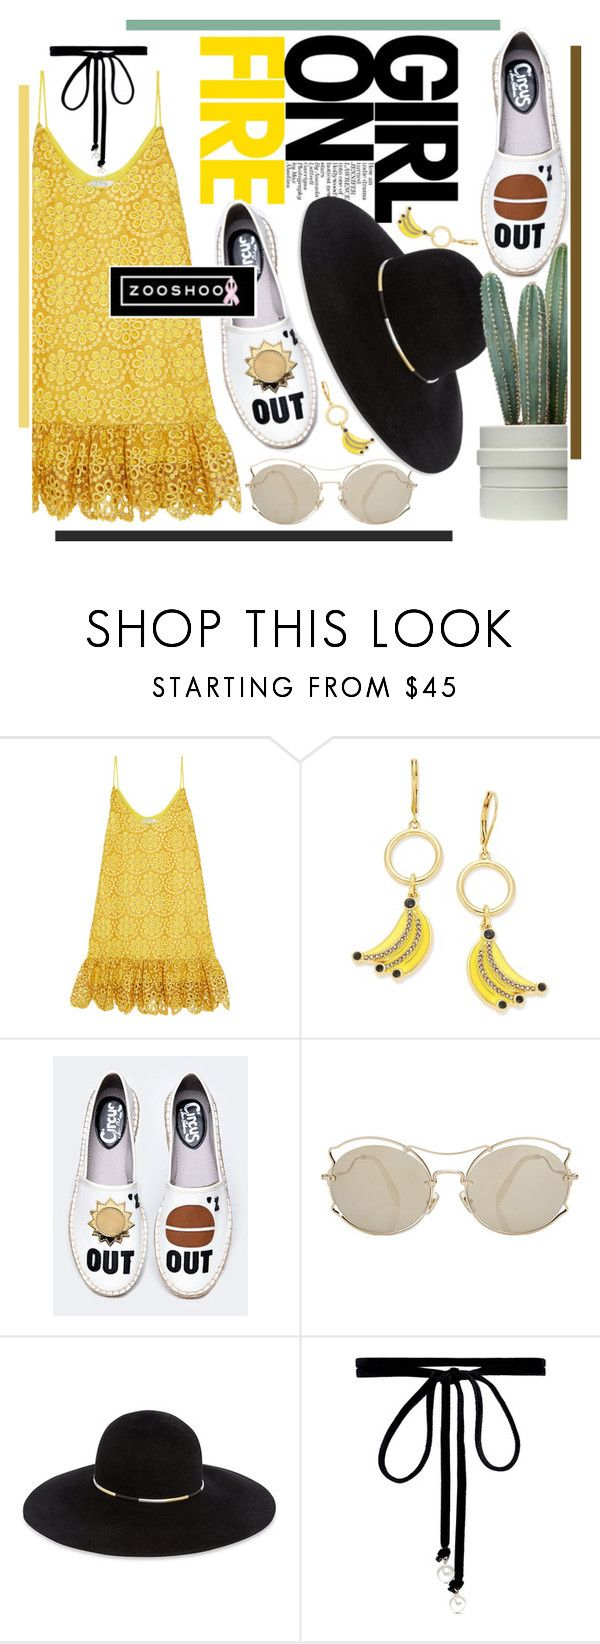 """No 480:Girl On Fire (ZOOSHOO)"" by lovepastel ❤ liked on Polyvore featuring Alexis, Kate Spade, Miu Miu, Eugenia Kim and Joomi Lim"